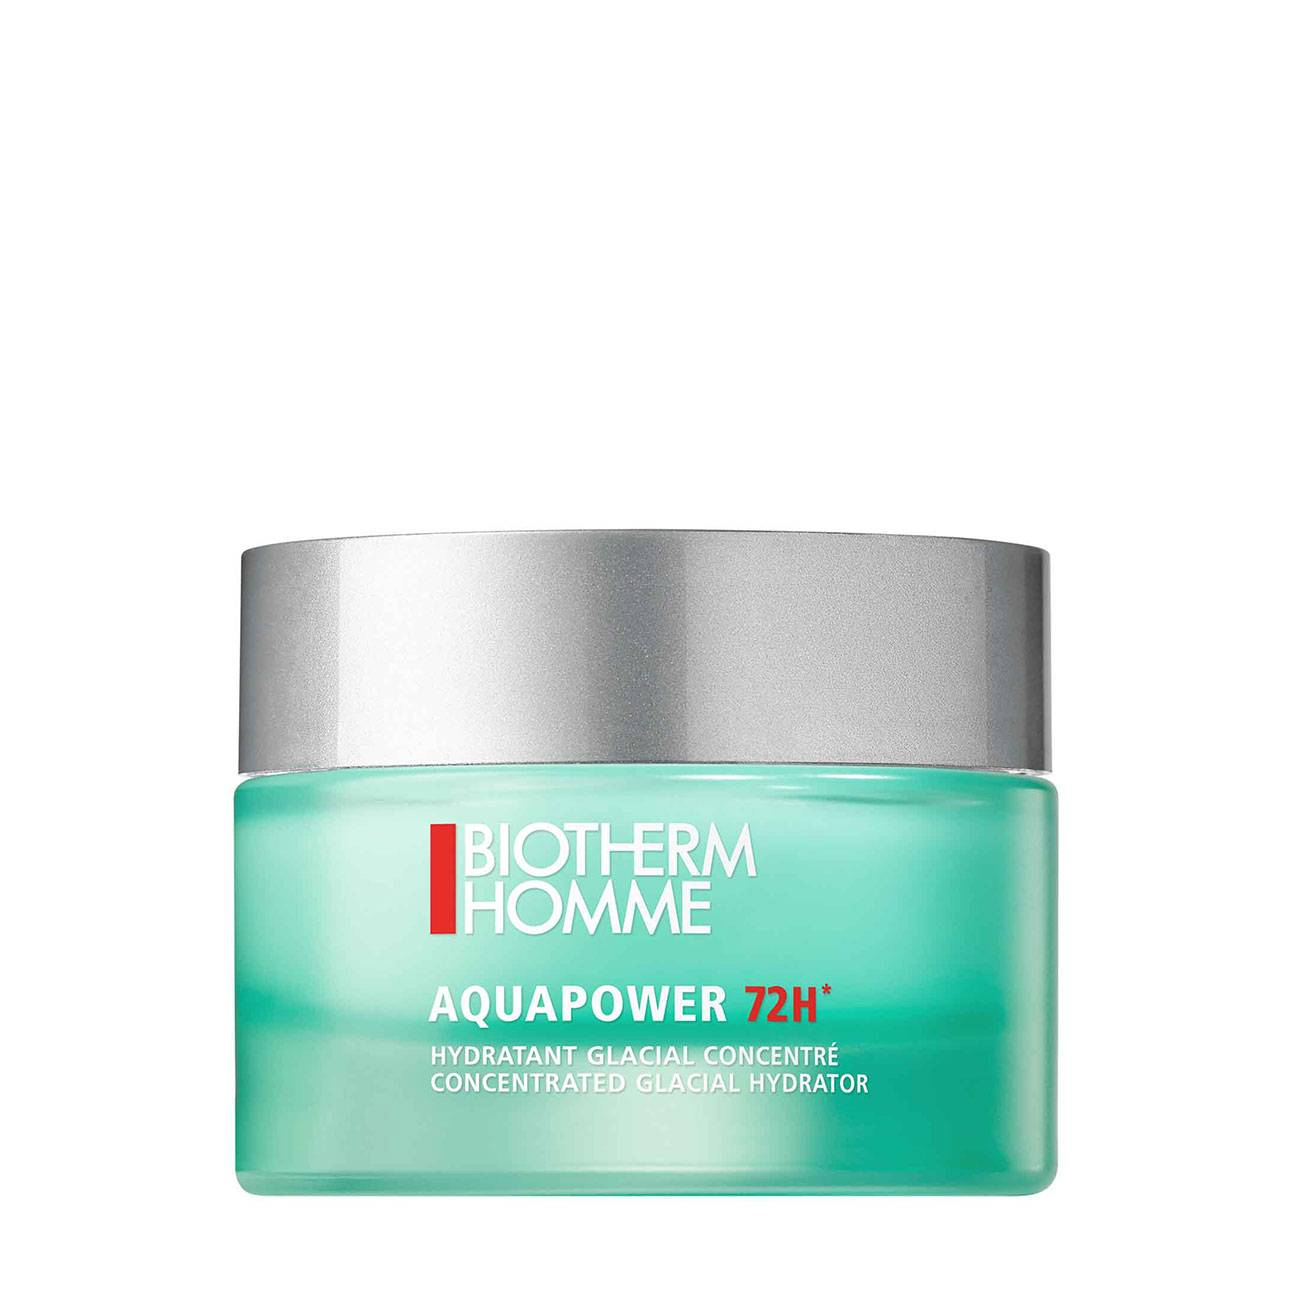 Homme Aqua Power Concentrated Glacial Hydrator 50ml Biotherm imagine 2021 bestvalue.eu